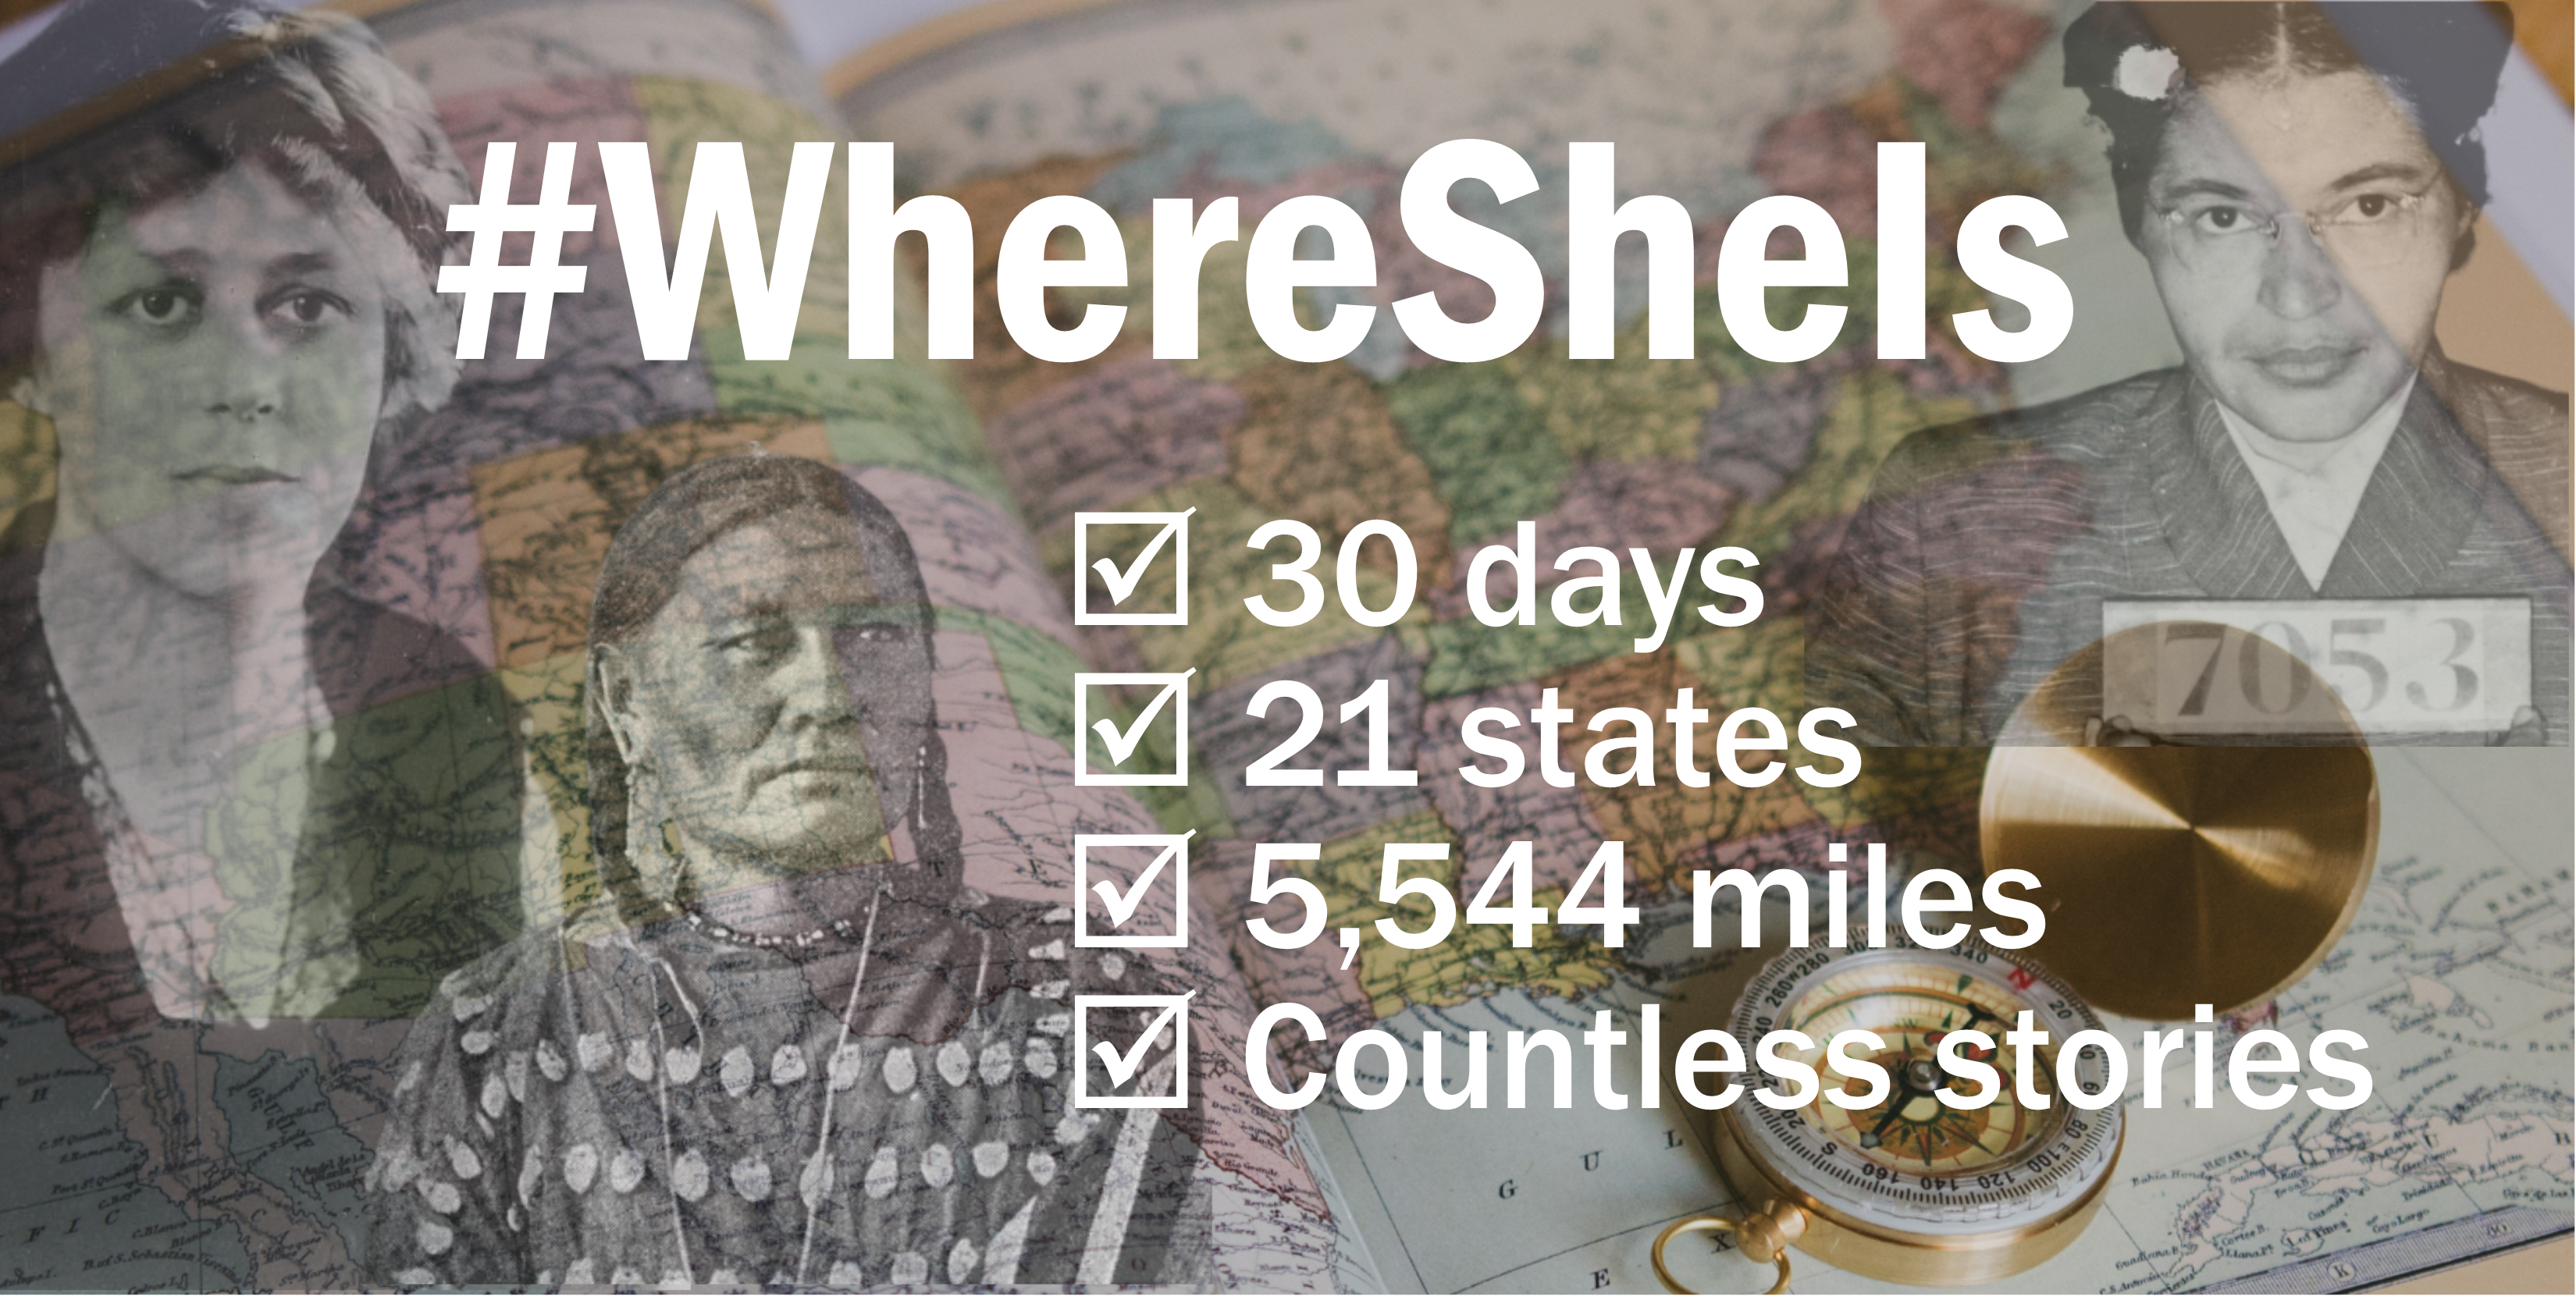 WhereSheIs featured image PNG